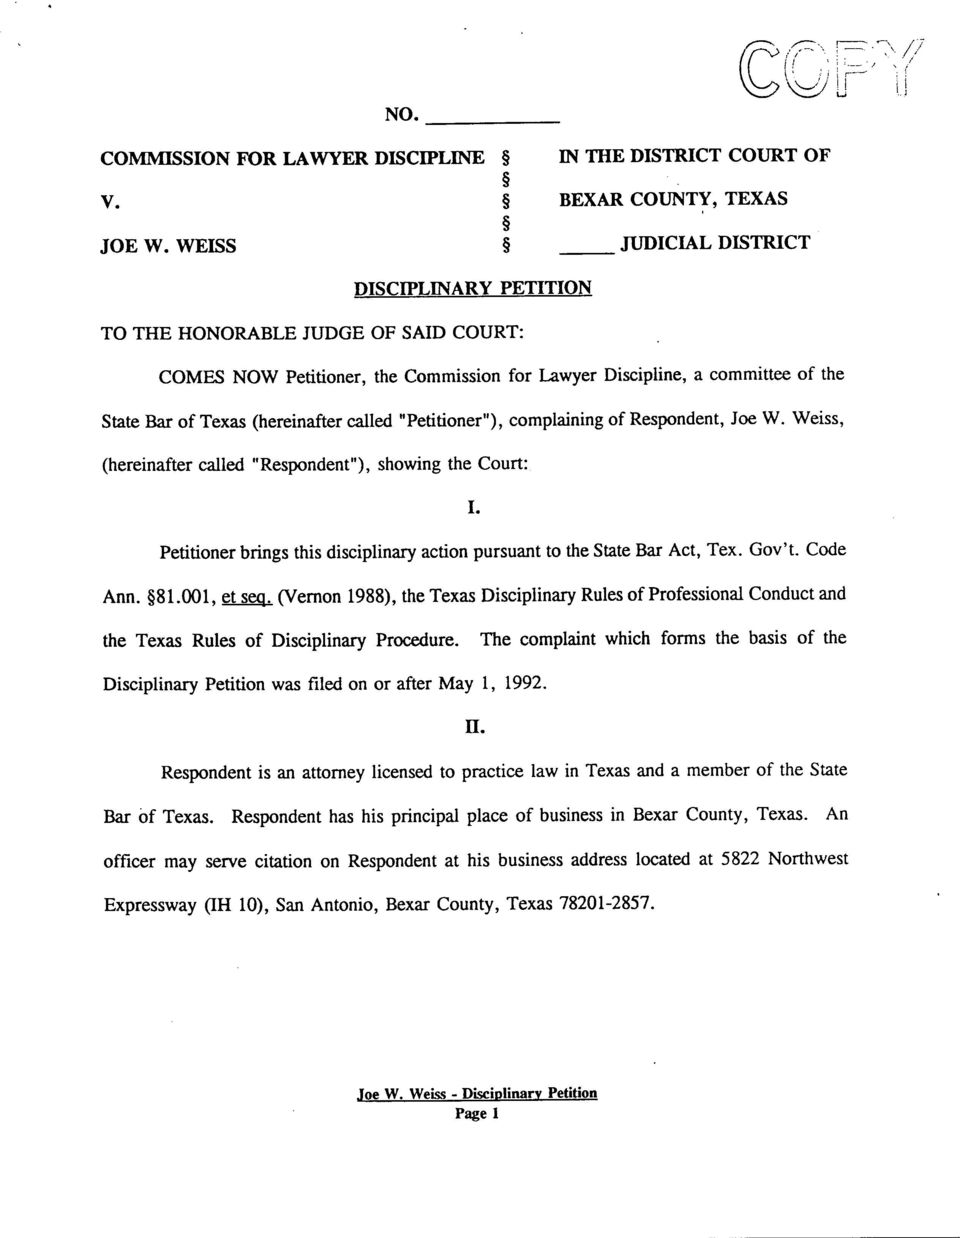 "called ""Petitioner""), complaining of Respondent, Joe W. Weiss, (hereinafter called ""Respondent""), showing the Court: I. Petitioner brings this disciplinary action pursuant to the State Bar Act, Tex."